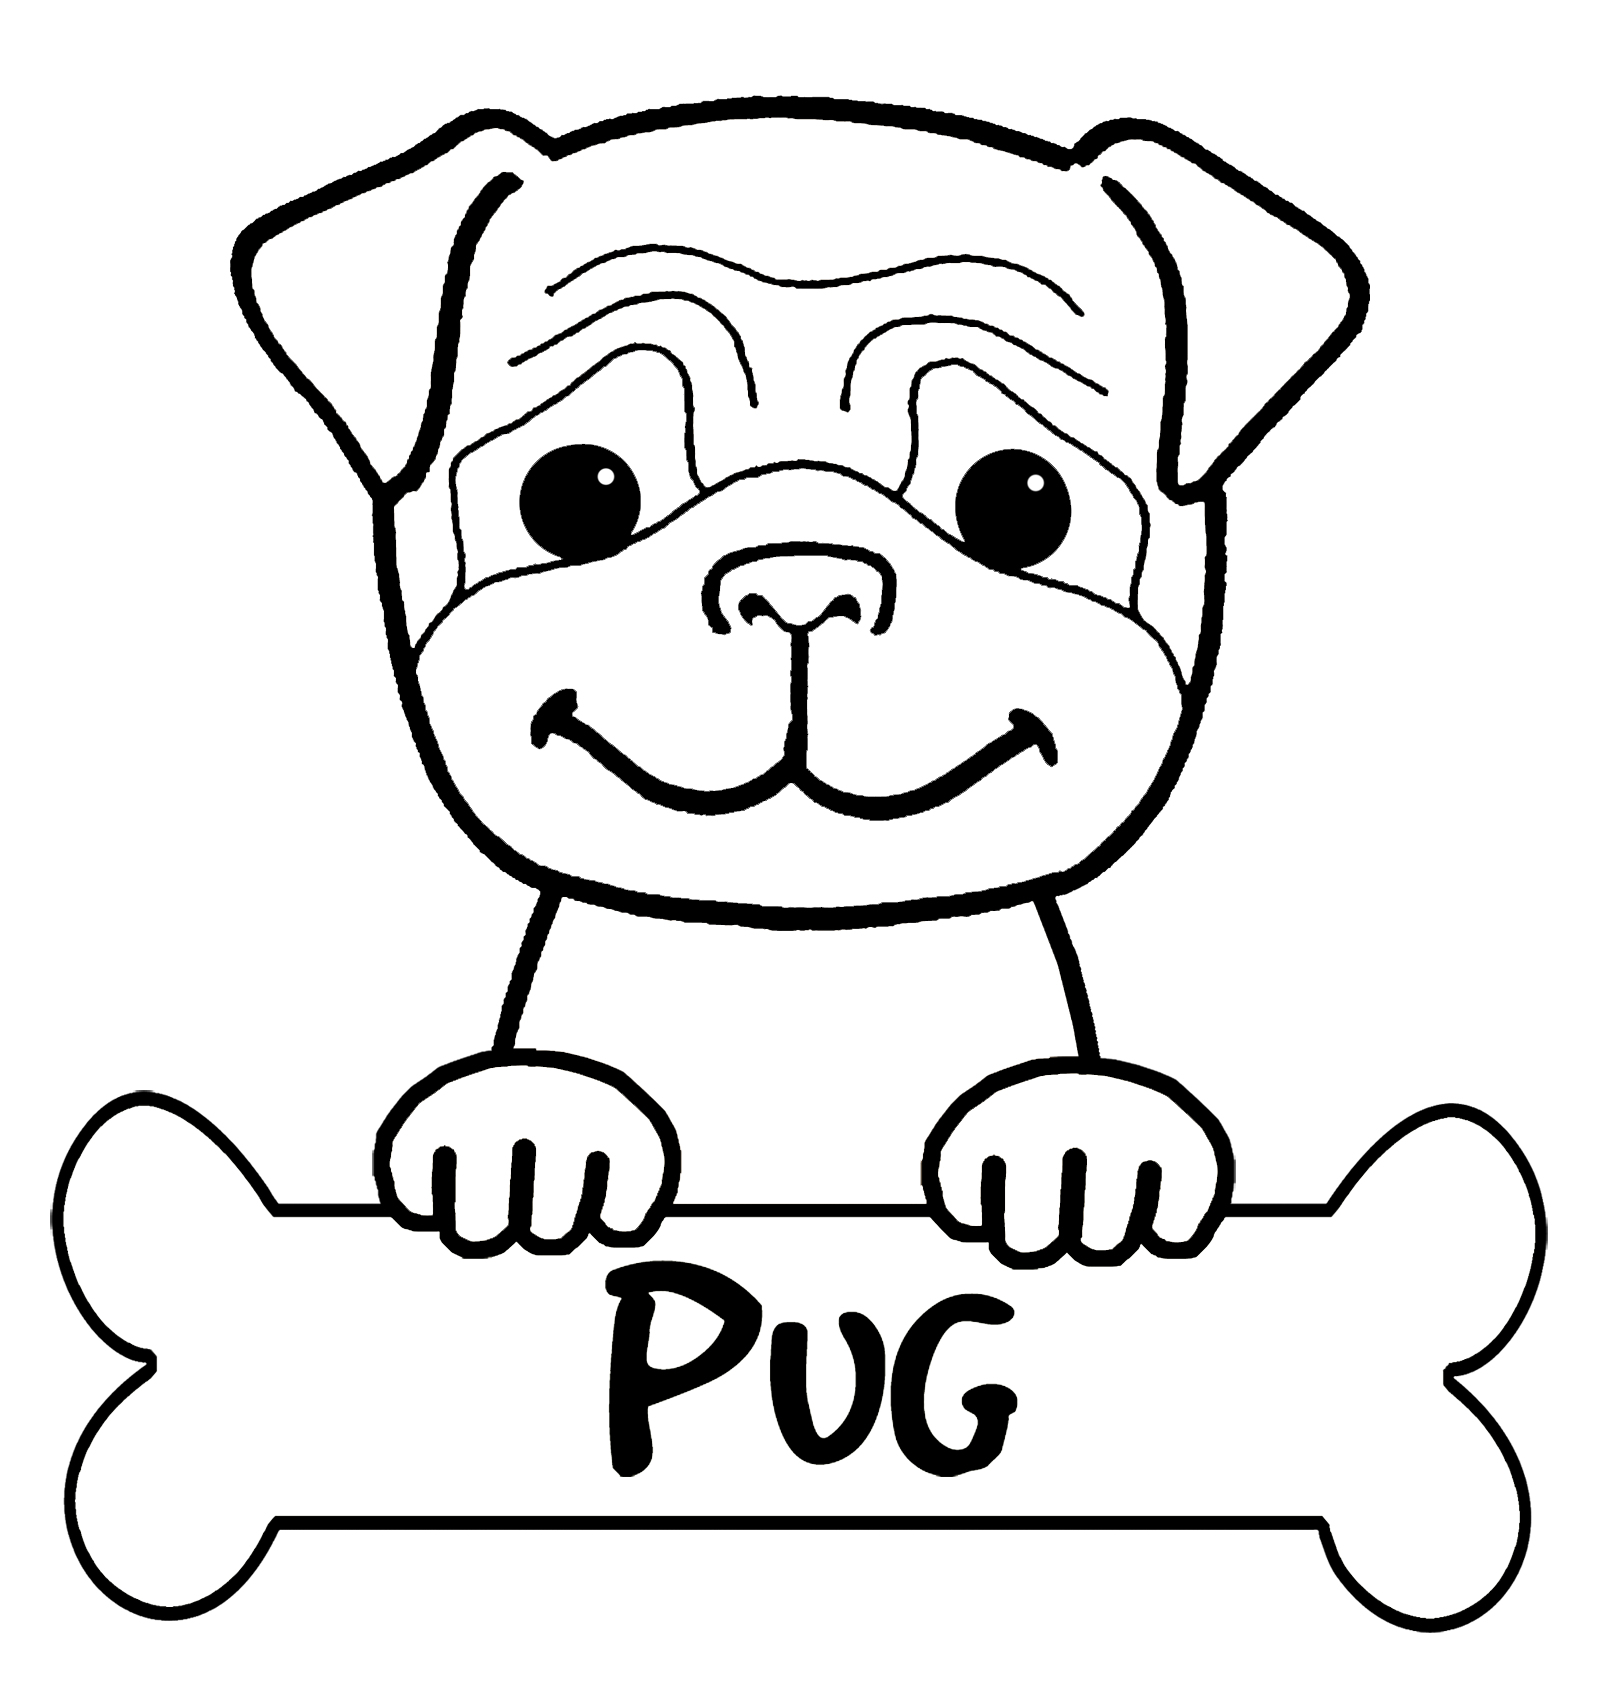 Easy Pug Drawing At Getdrawings Com Free For Personal Use Easy Pug